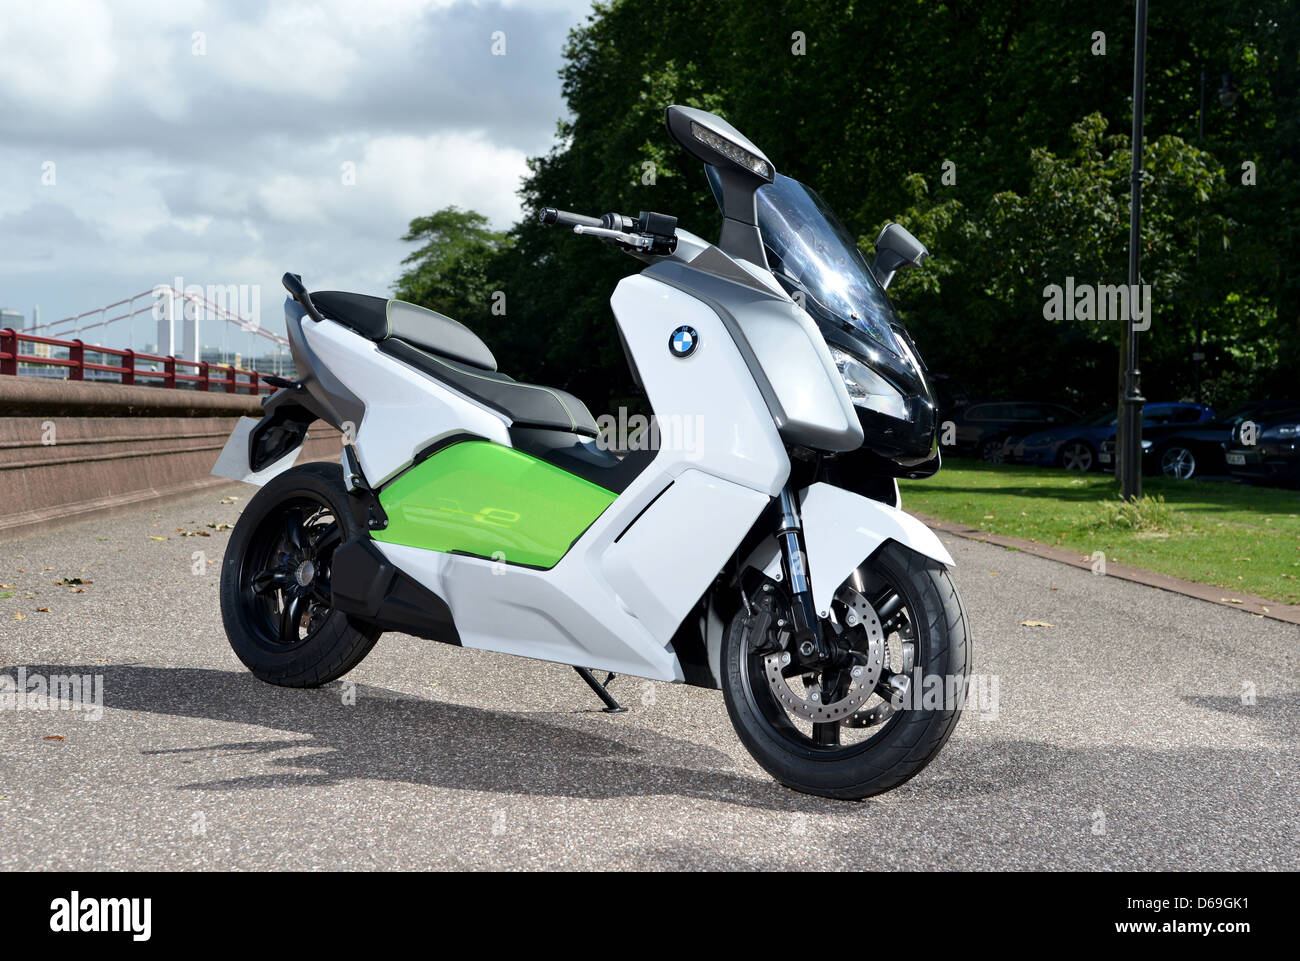 bmw scooter stock photos bmw scooter stock images alamy. Black Bedroom Furniture Sets. Home Design Ideas